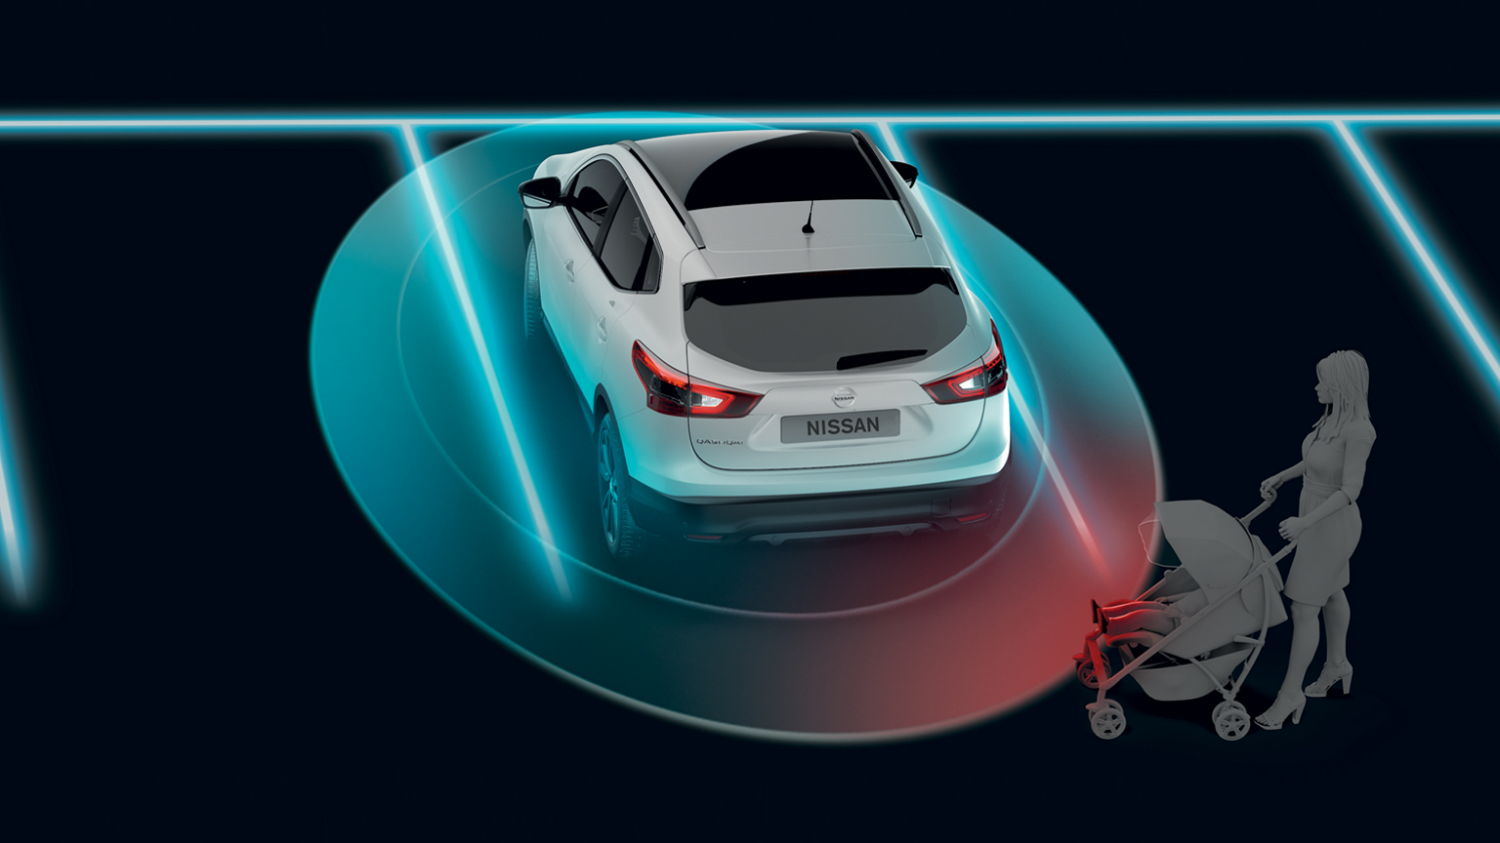 Nissan PULSAR bybil – Illustration af Moving Object Detection